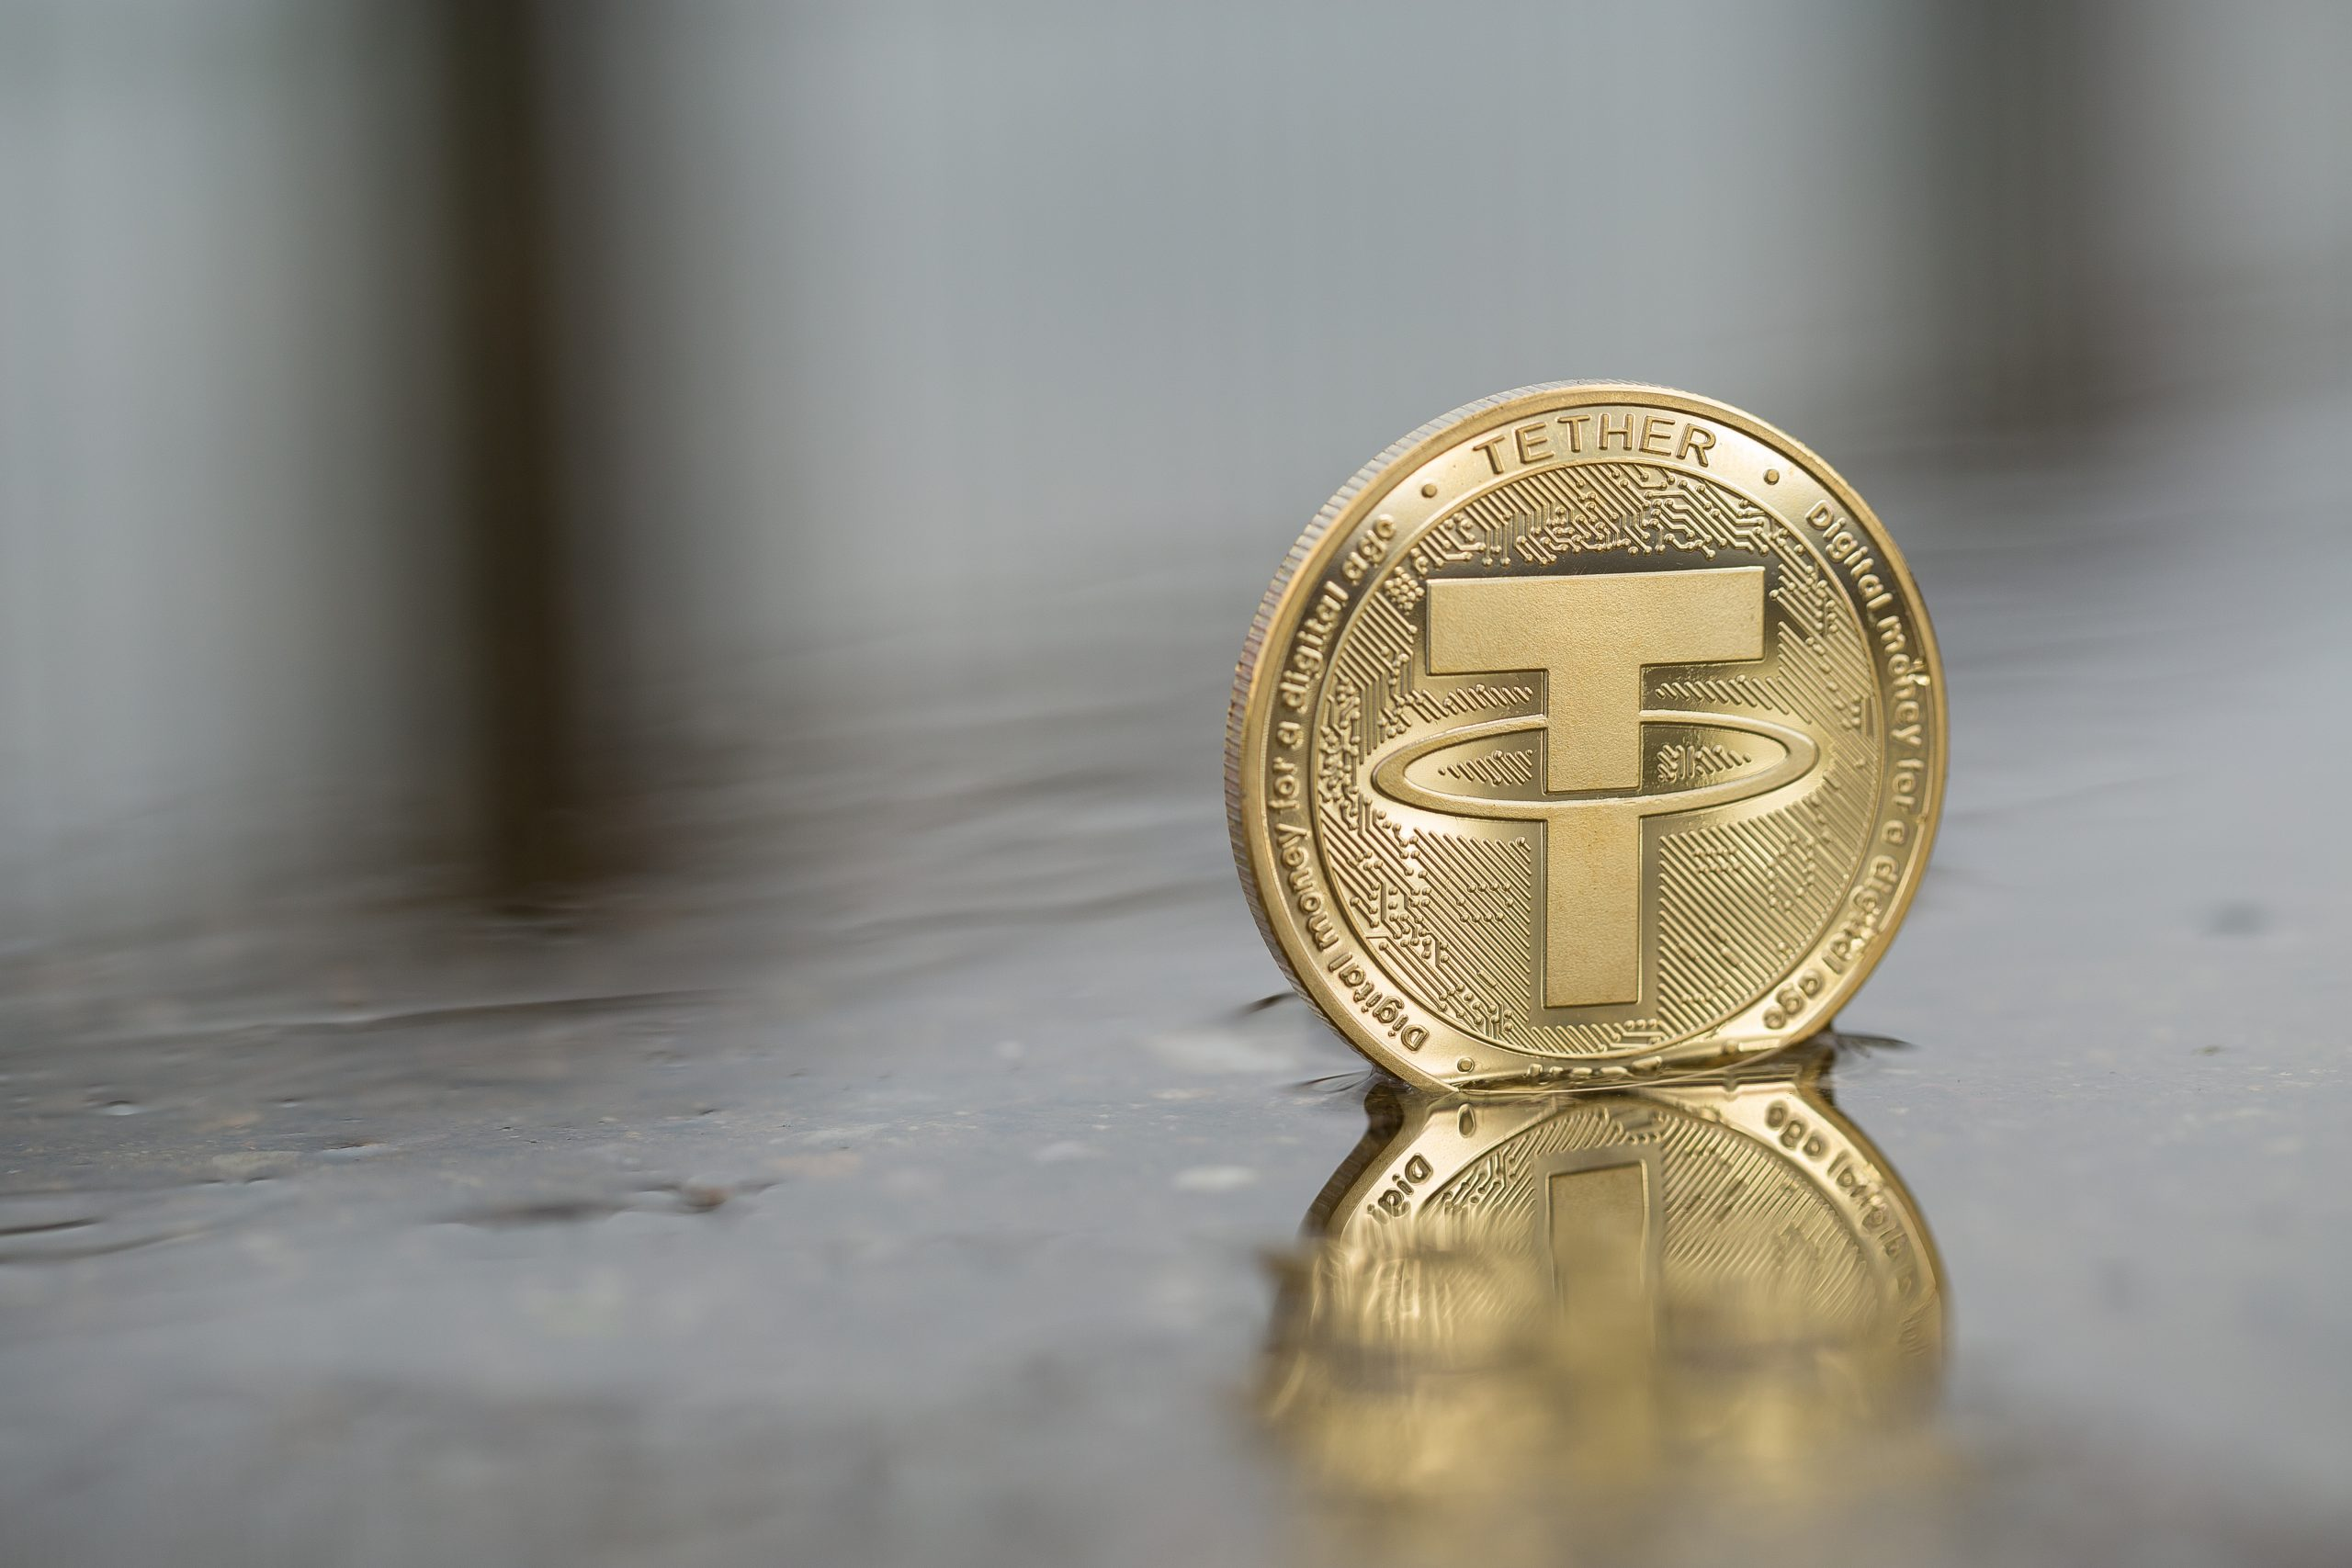 Is Tether Real a Rip-off to Enrich Bitcoin Investors?